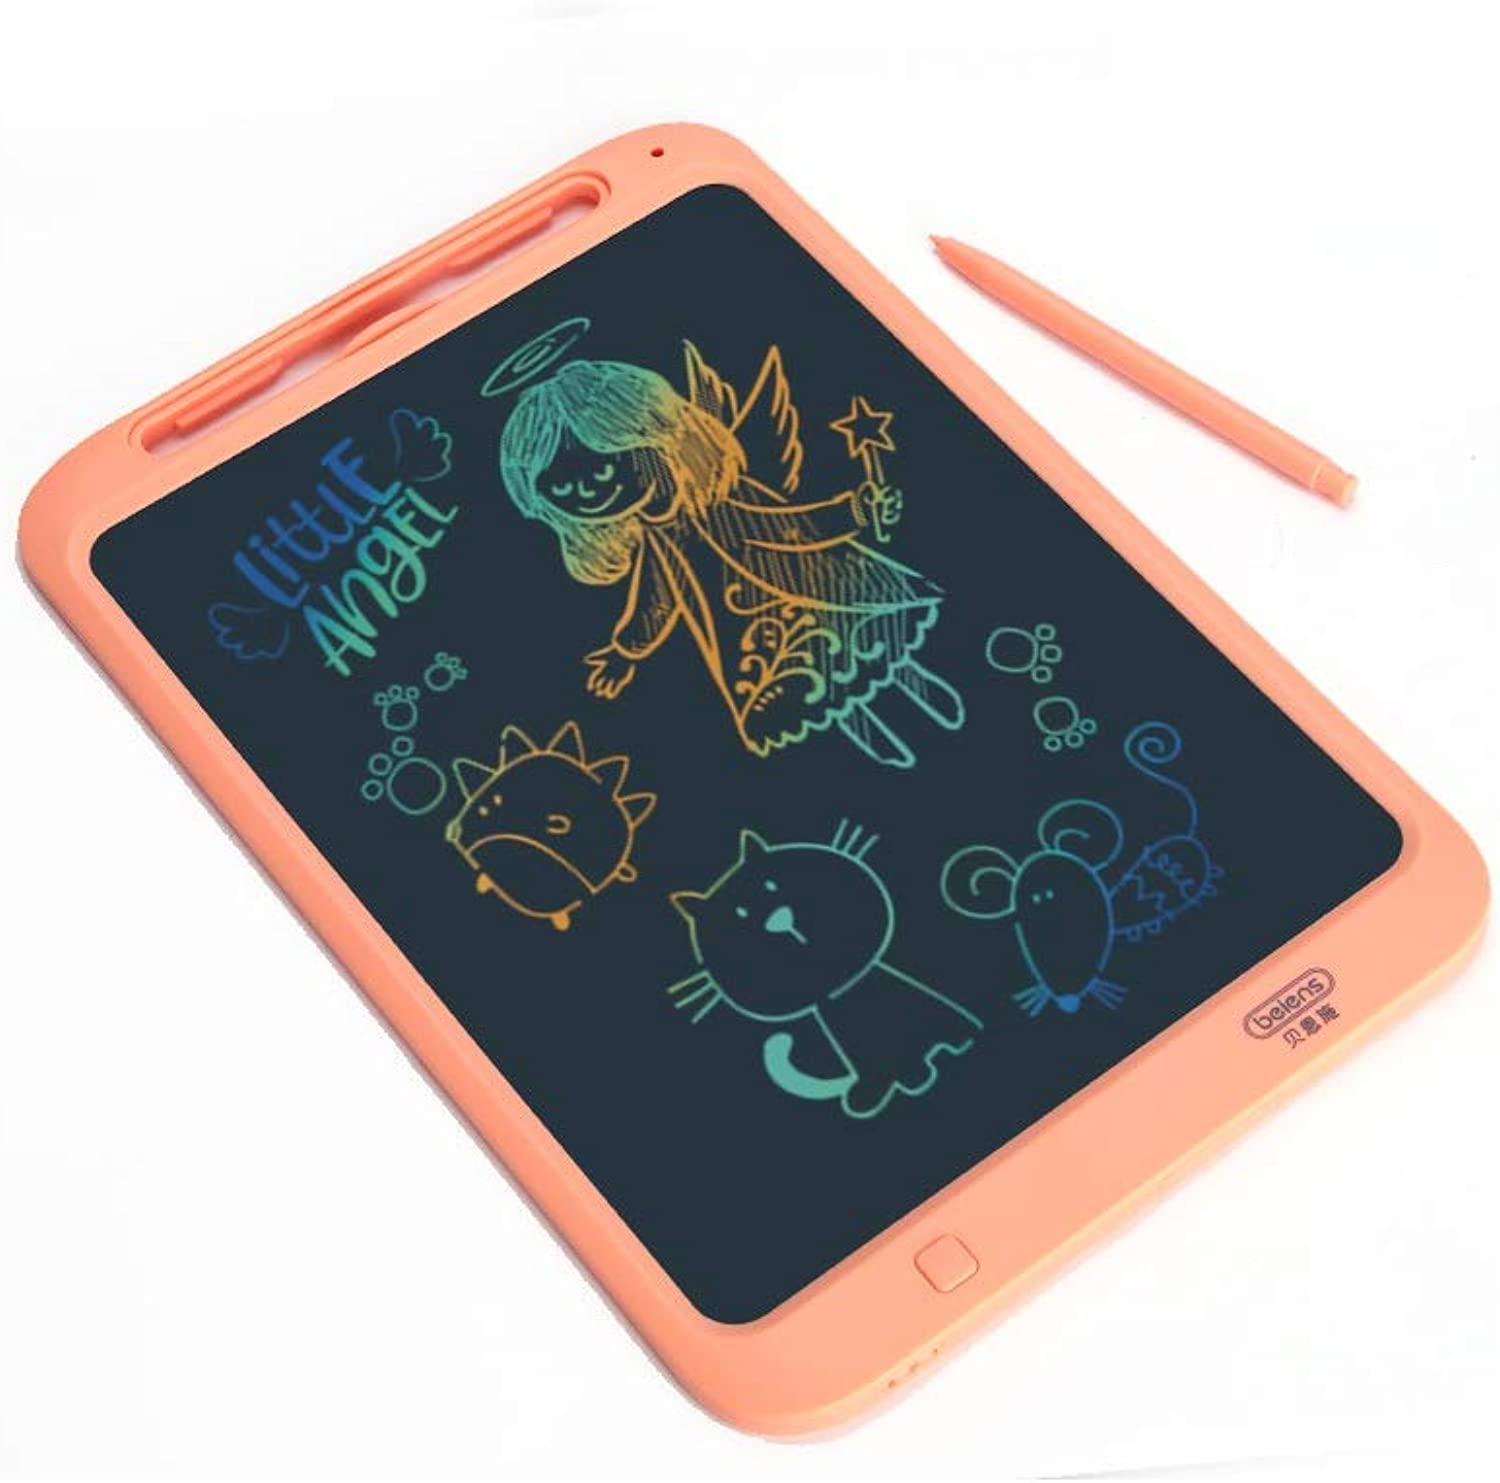 Huijunwenti Smart LCD Sketchpad, Graffiti Painting Small Blackboard, Electronic Draft Puzzle Tablet, bluee, orange Sketchpad (color   orange)